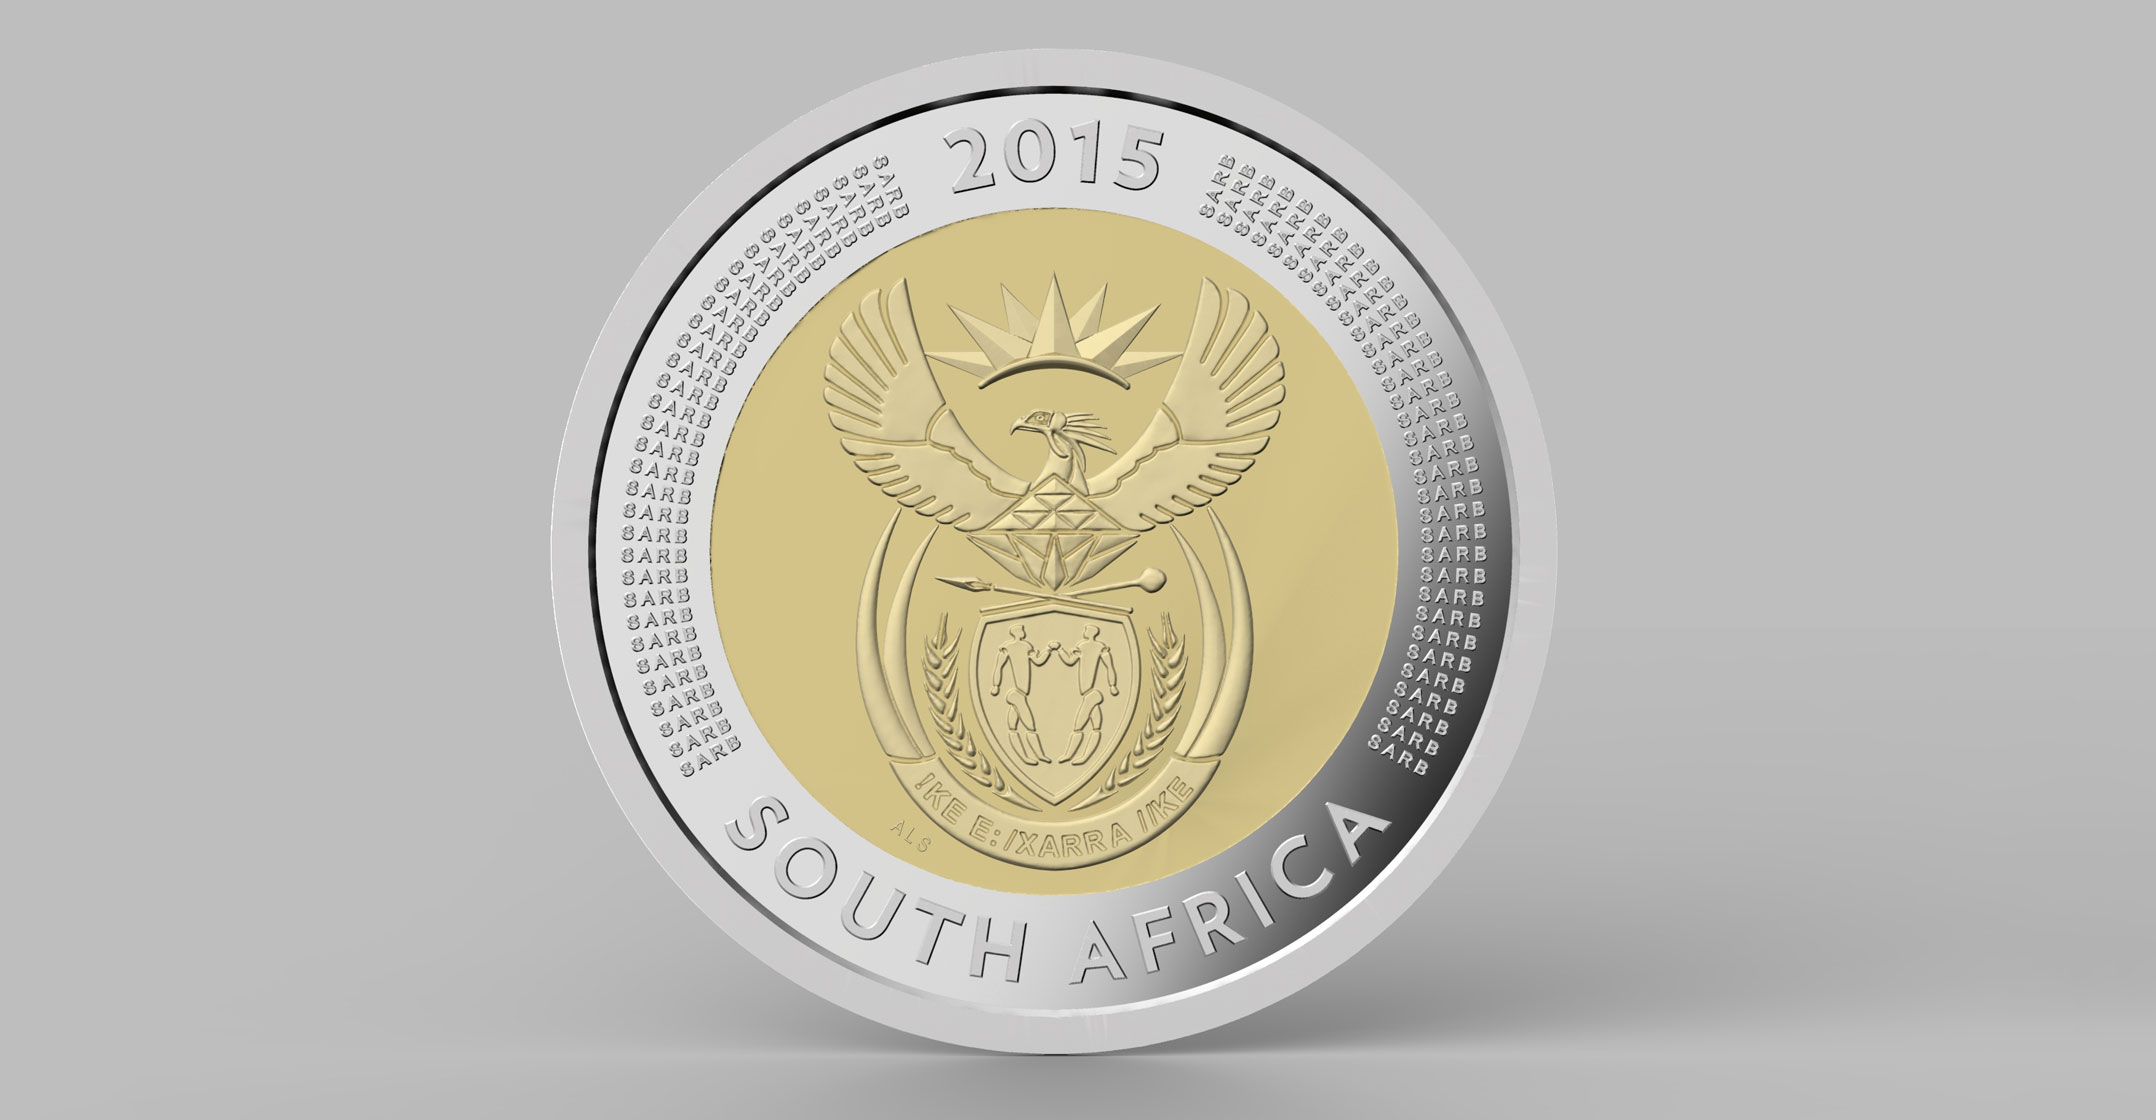 Don T Count The Rand Out Yet Ysts At Merchant Bank And Ing Groep Predict South African Currency Second Worst Emerging Market Performer In